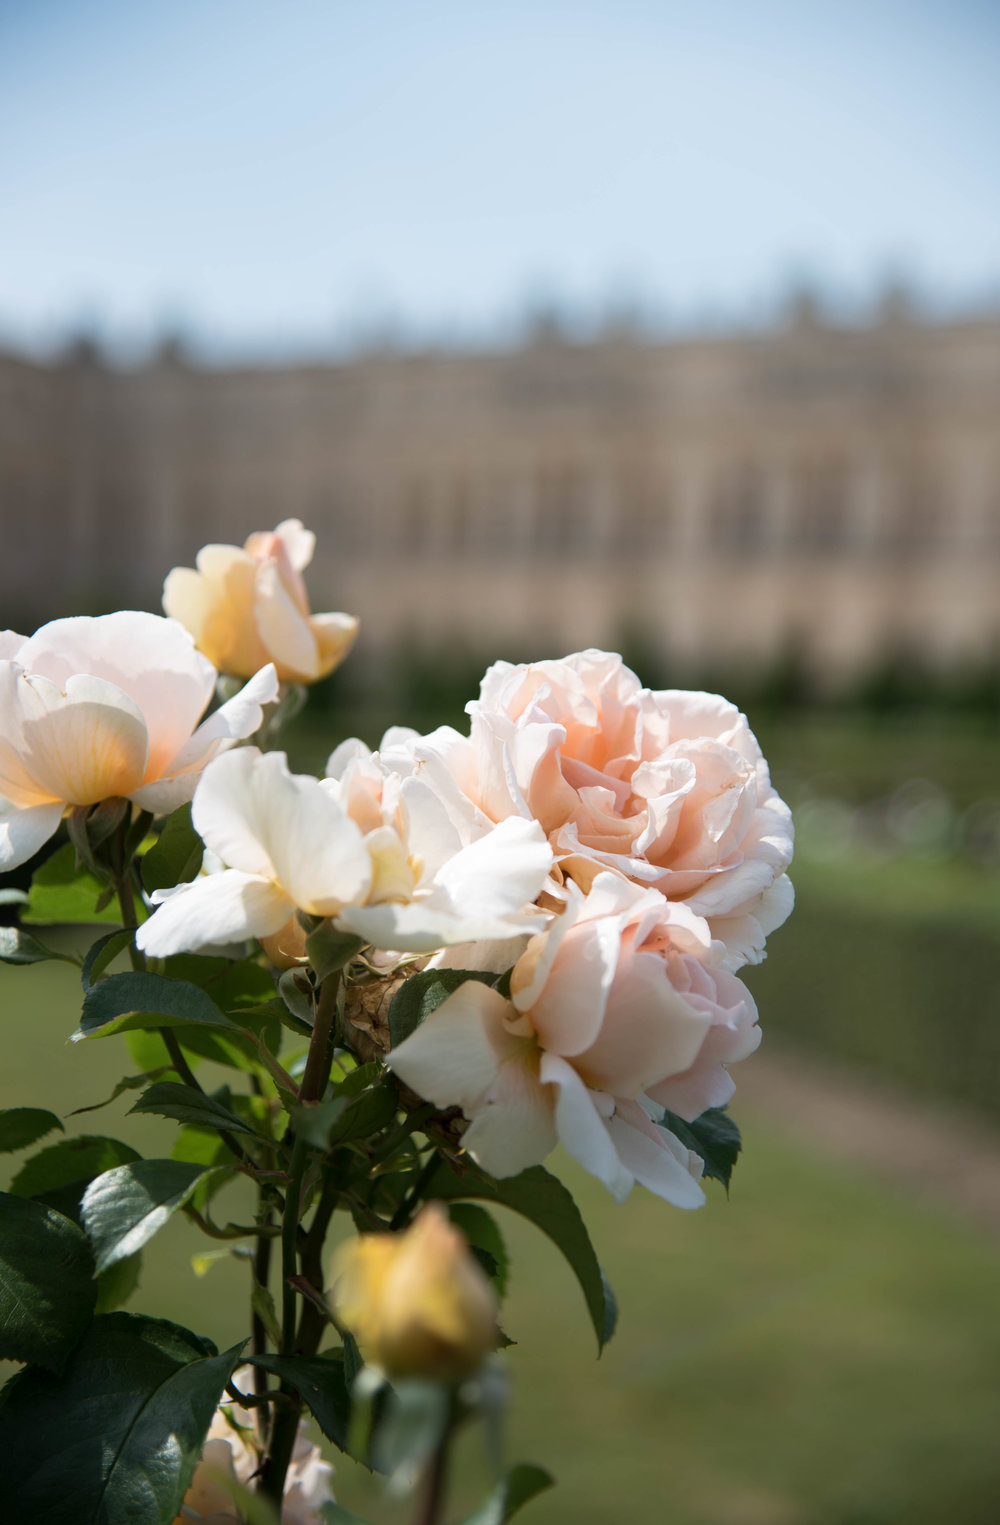 ROSE & IVY Journal Garden Dreamer | Solitude at Versailles